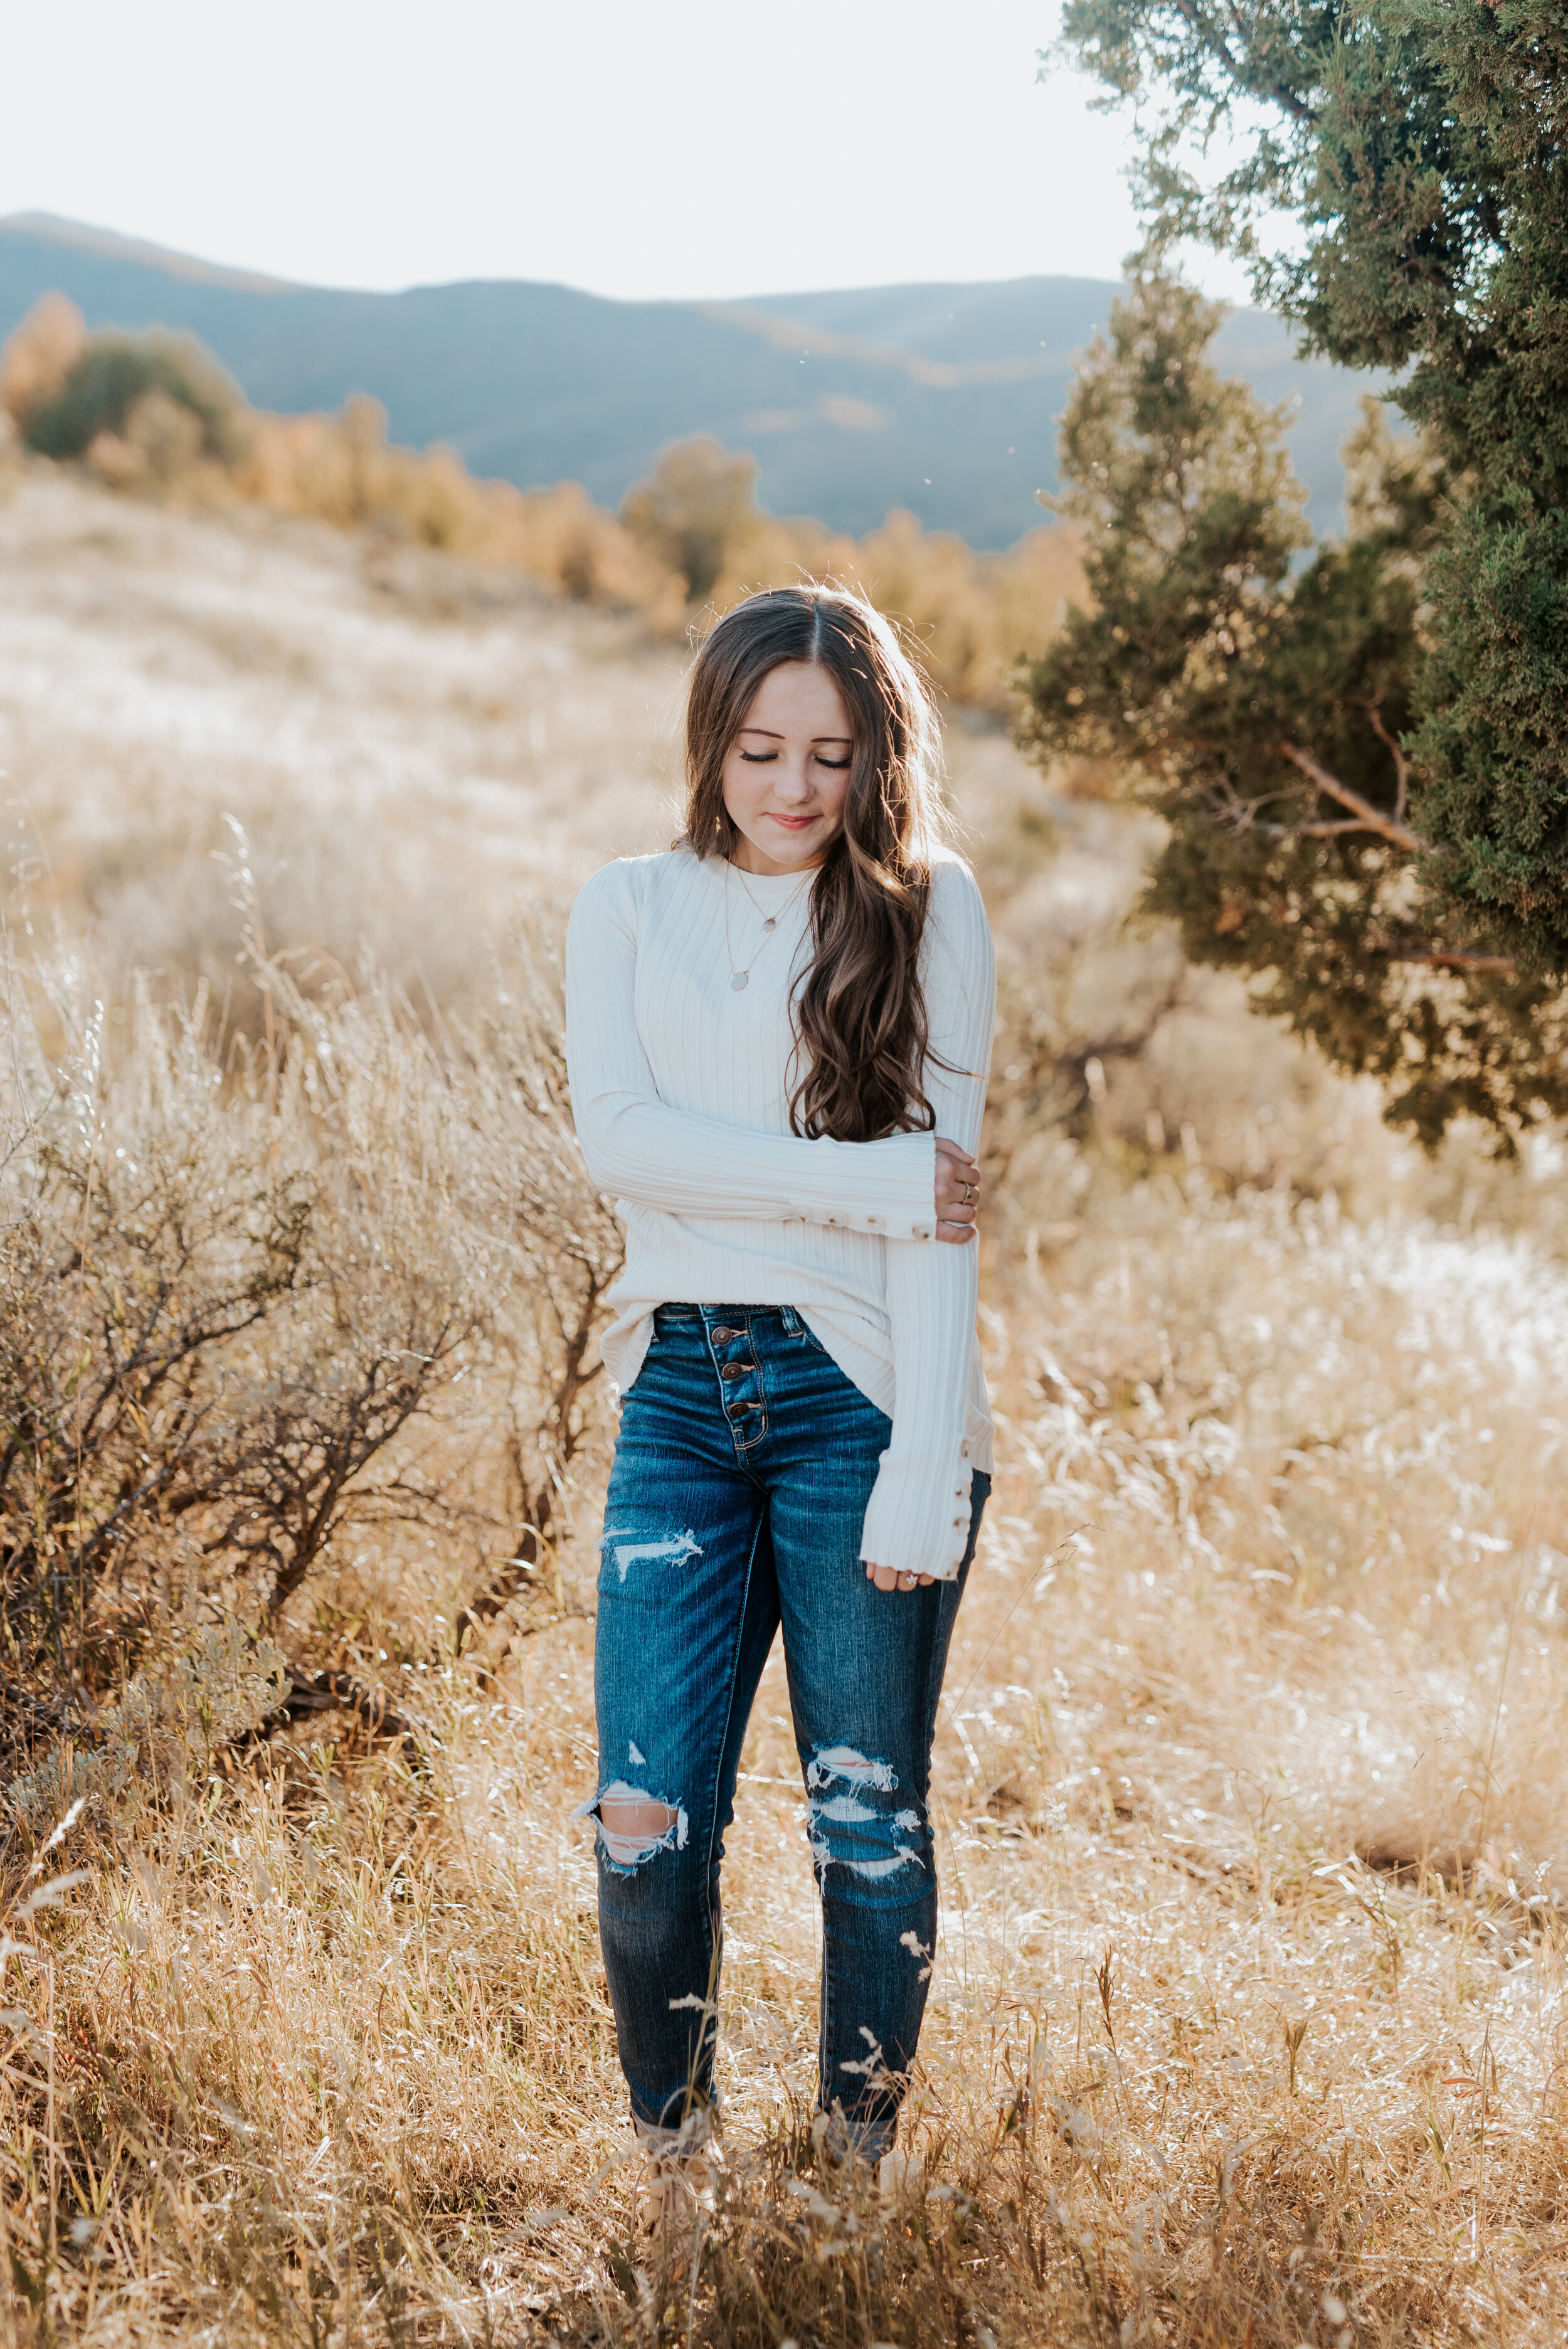 High school girl with long wavy brunette hair wearing a white sweater and dark wash denim in a golden field. teen fashion senior pictures photo session outfit inspiration casual senior picture outfits senior in high school graduating class of 2020 professional photographers in utah cache valley logan utah photographers #kristialysephotography #professionalphotographersinutah #utahphotographers #seniorportraits #cachevalley #loganutah #casualseniorpictureoutfits #teenfashion #senior #classof2020